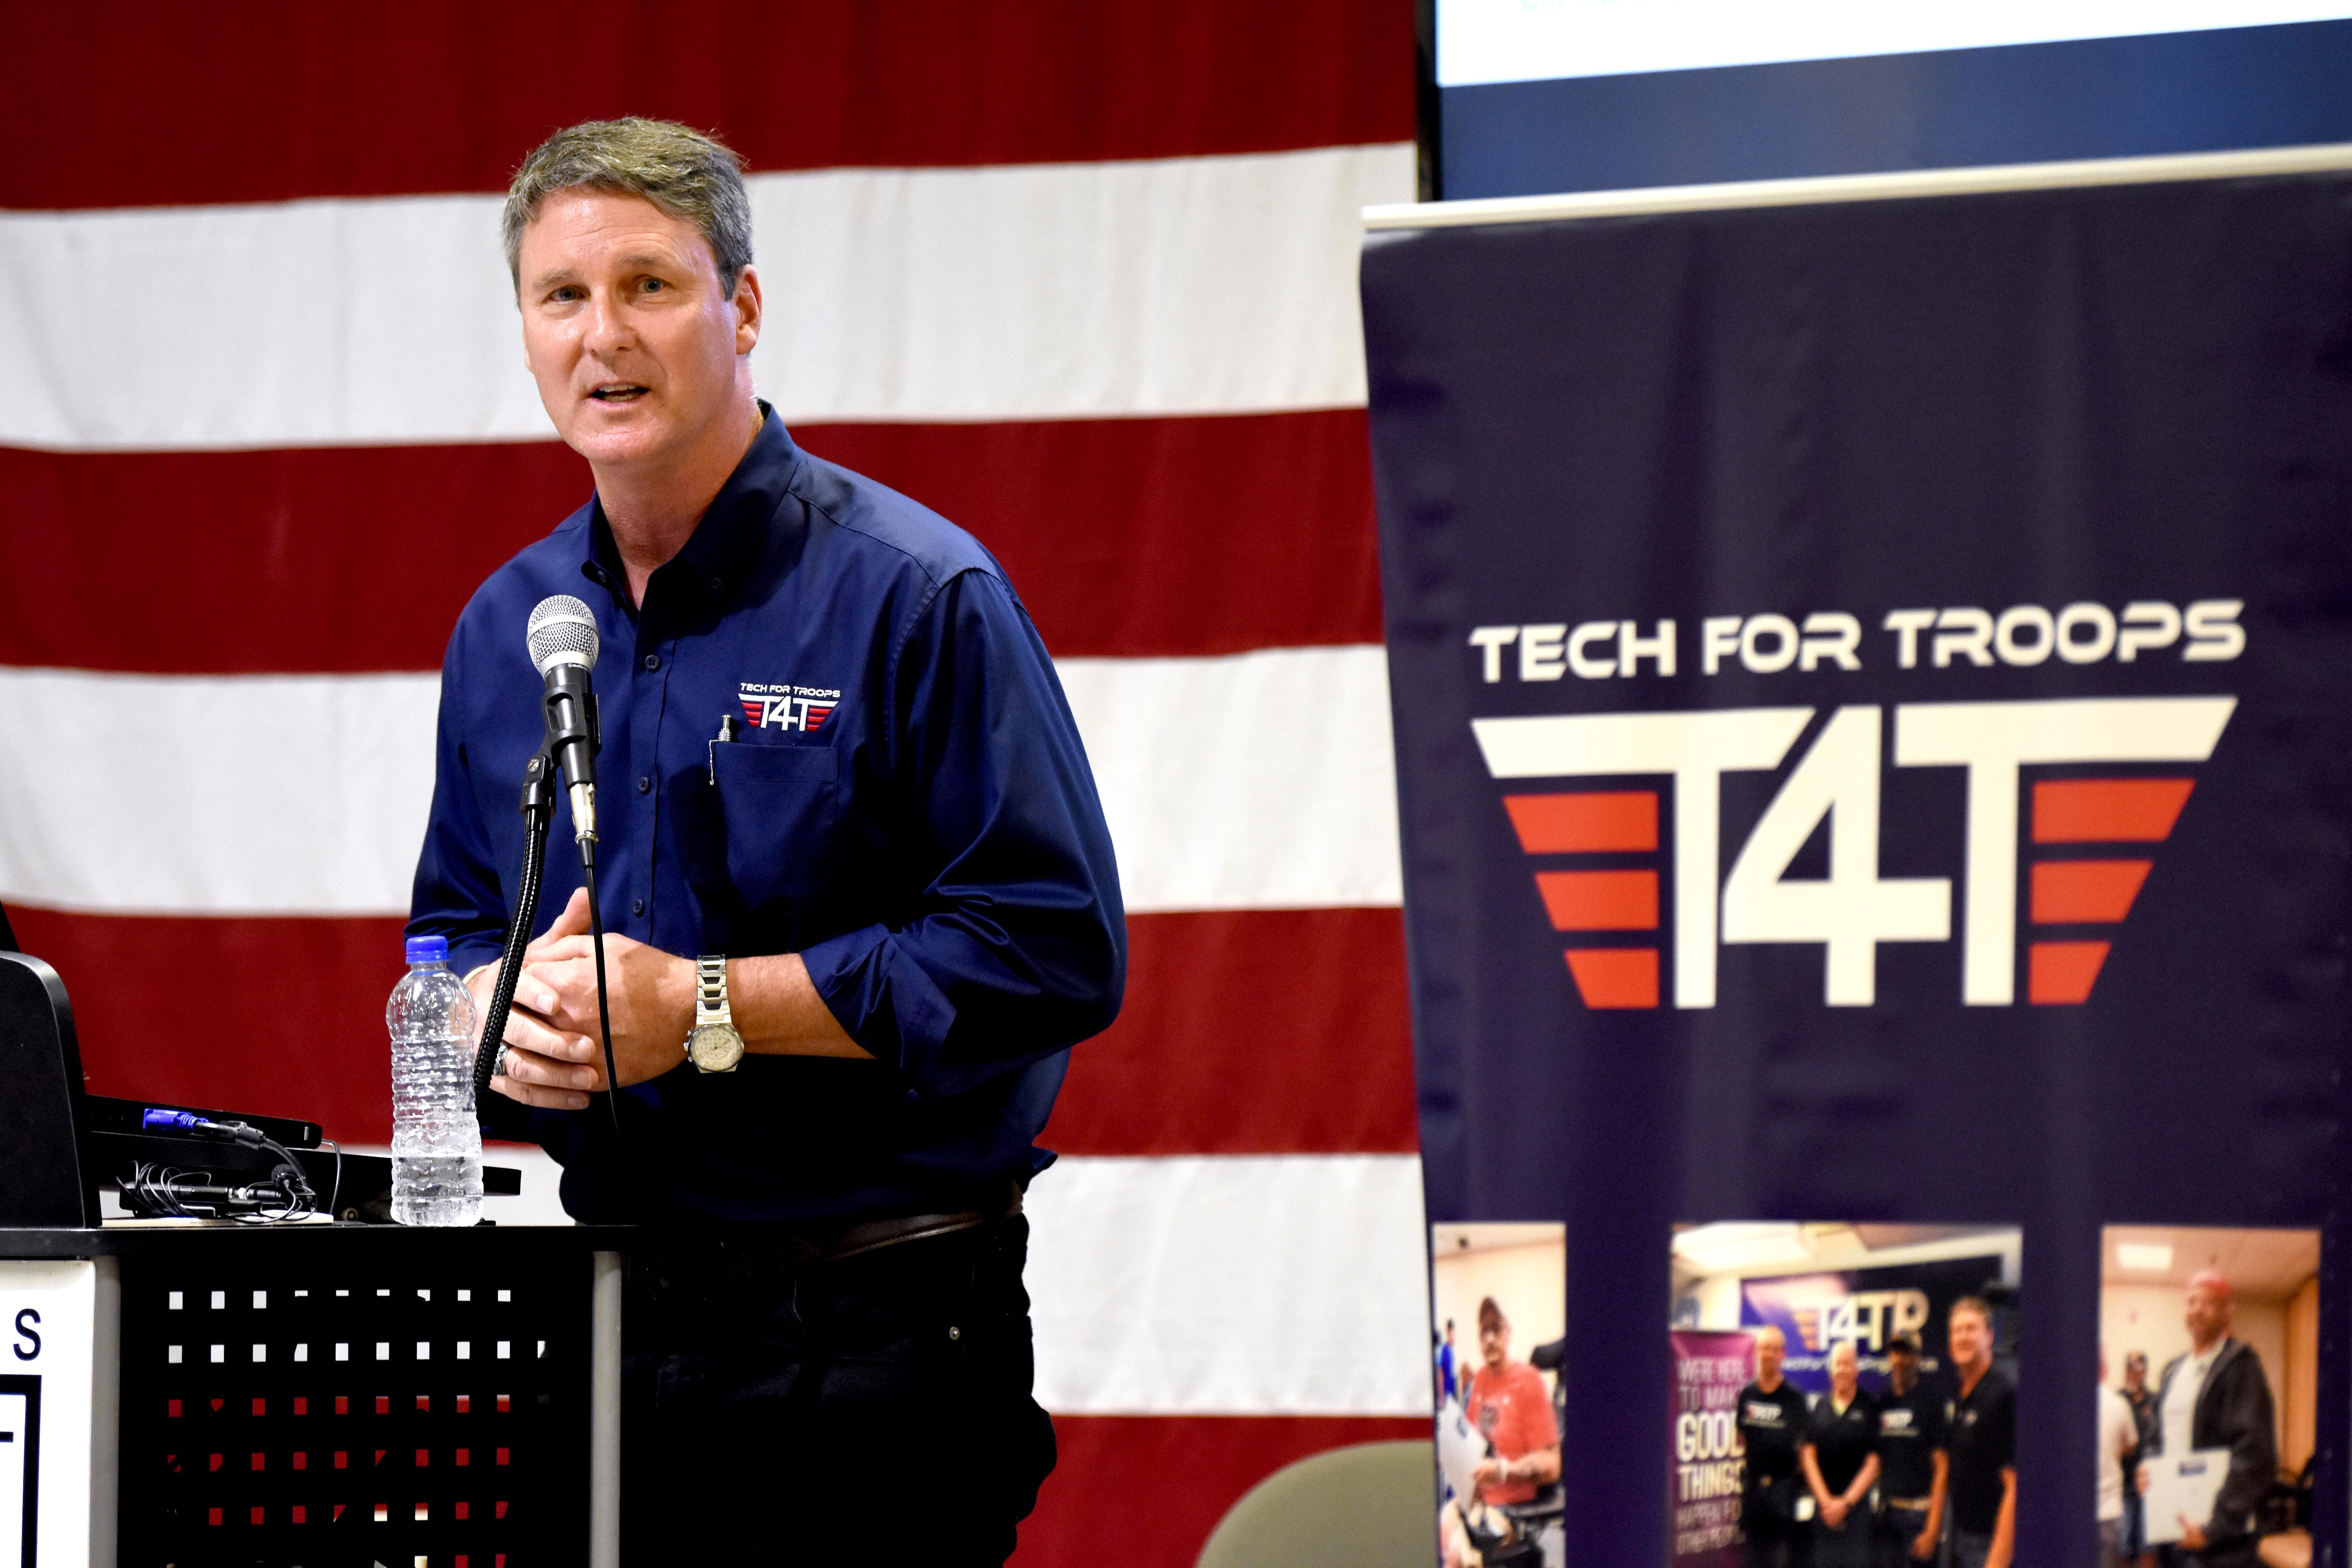 Tech for Troops helping to reintegrate homeless Veteran into productive society.